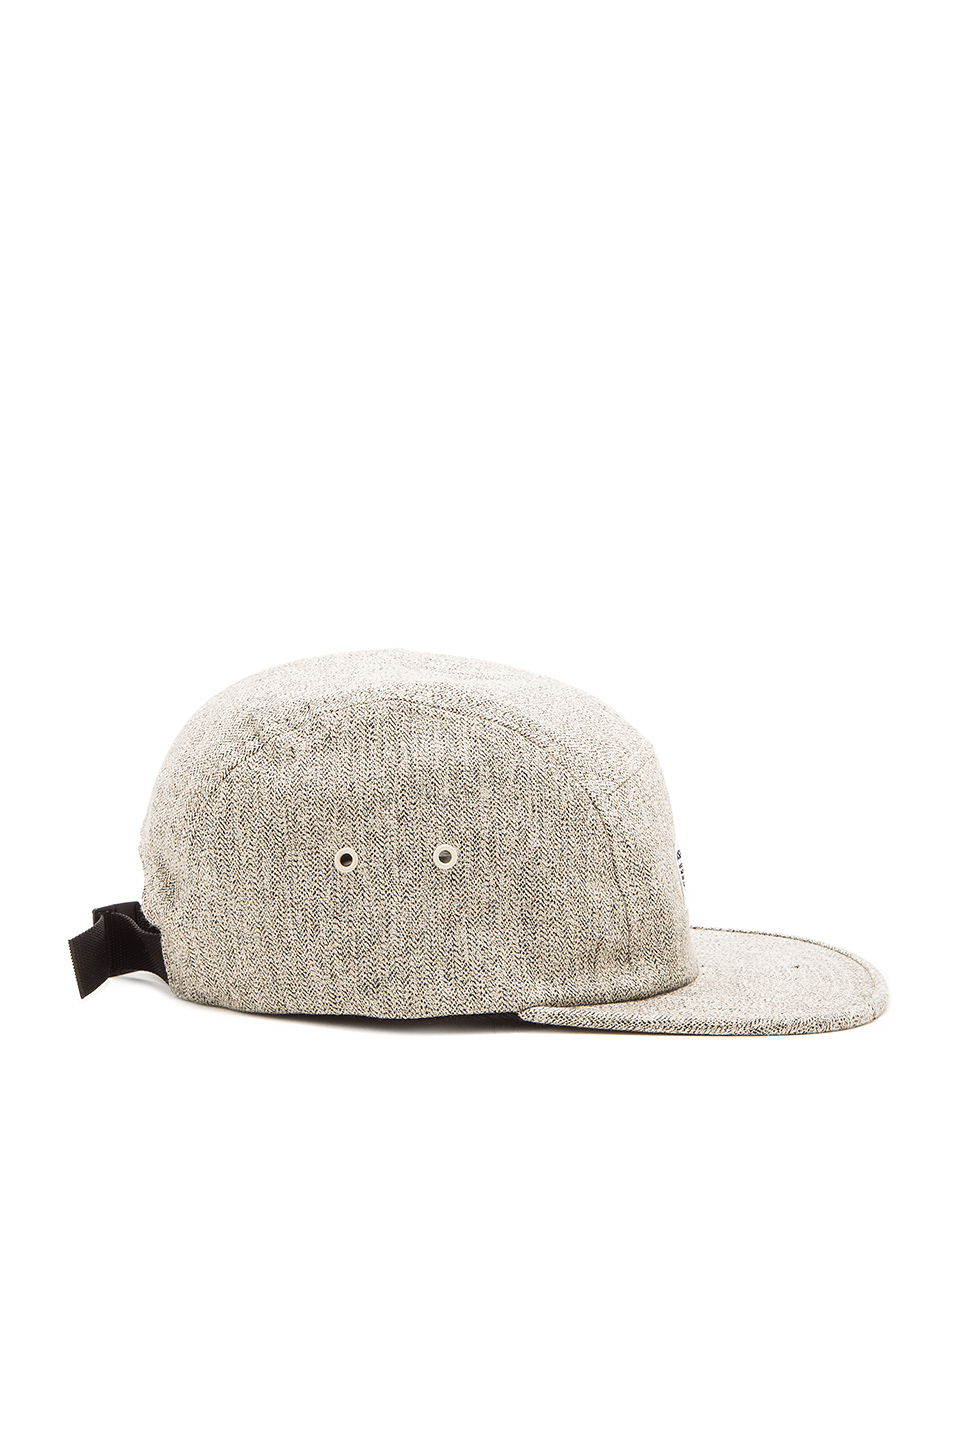 Lyst - Norse Projects Melange Herringbone 5 Panel Hat in Gray for Men 33f06469d49